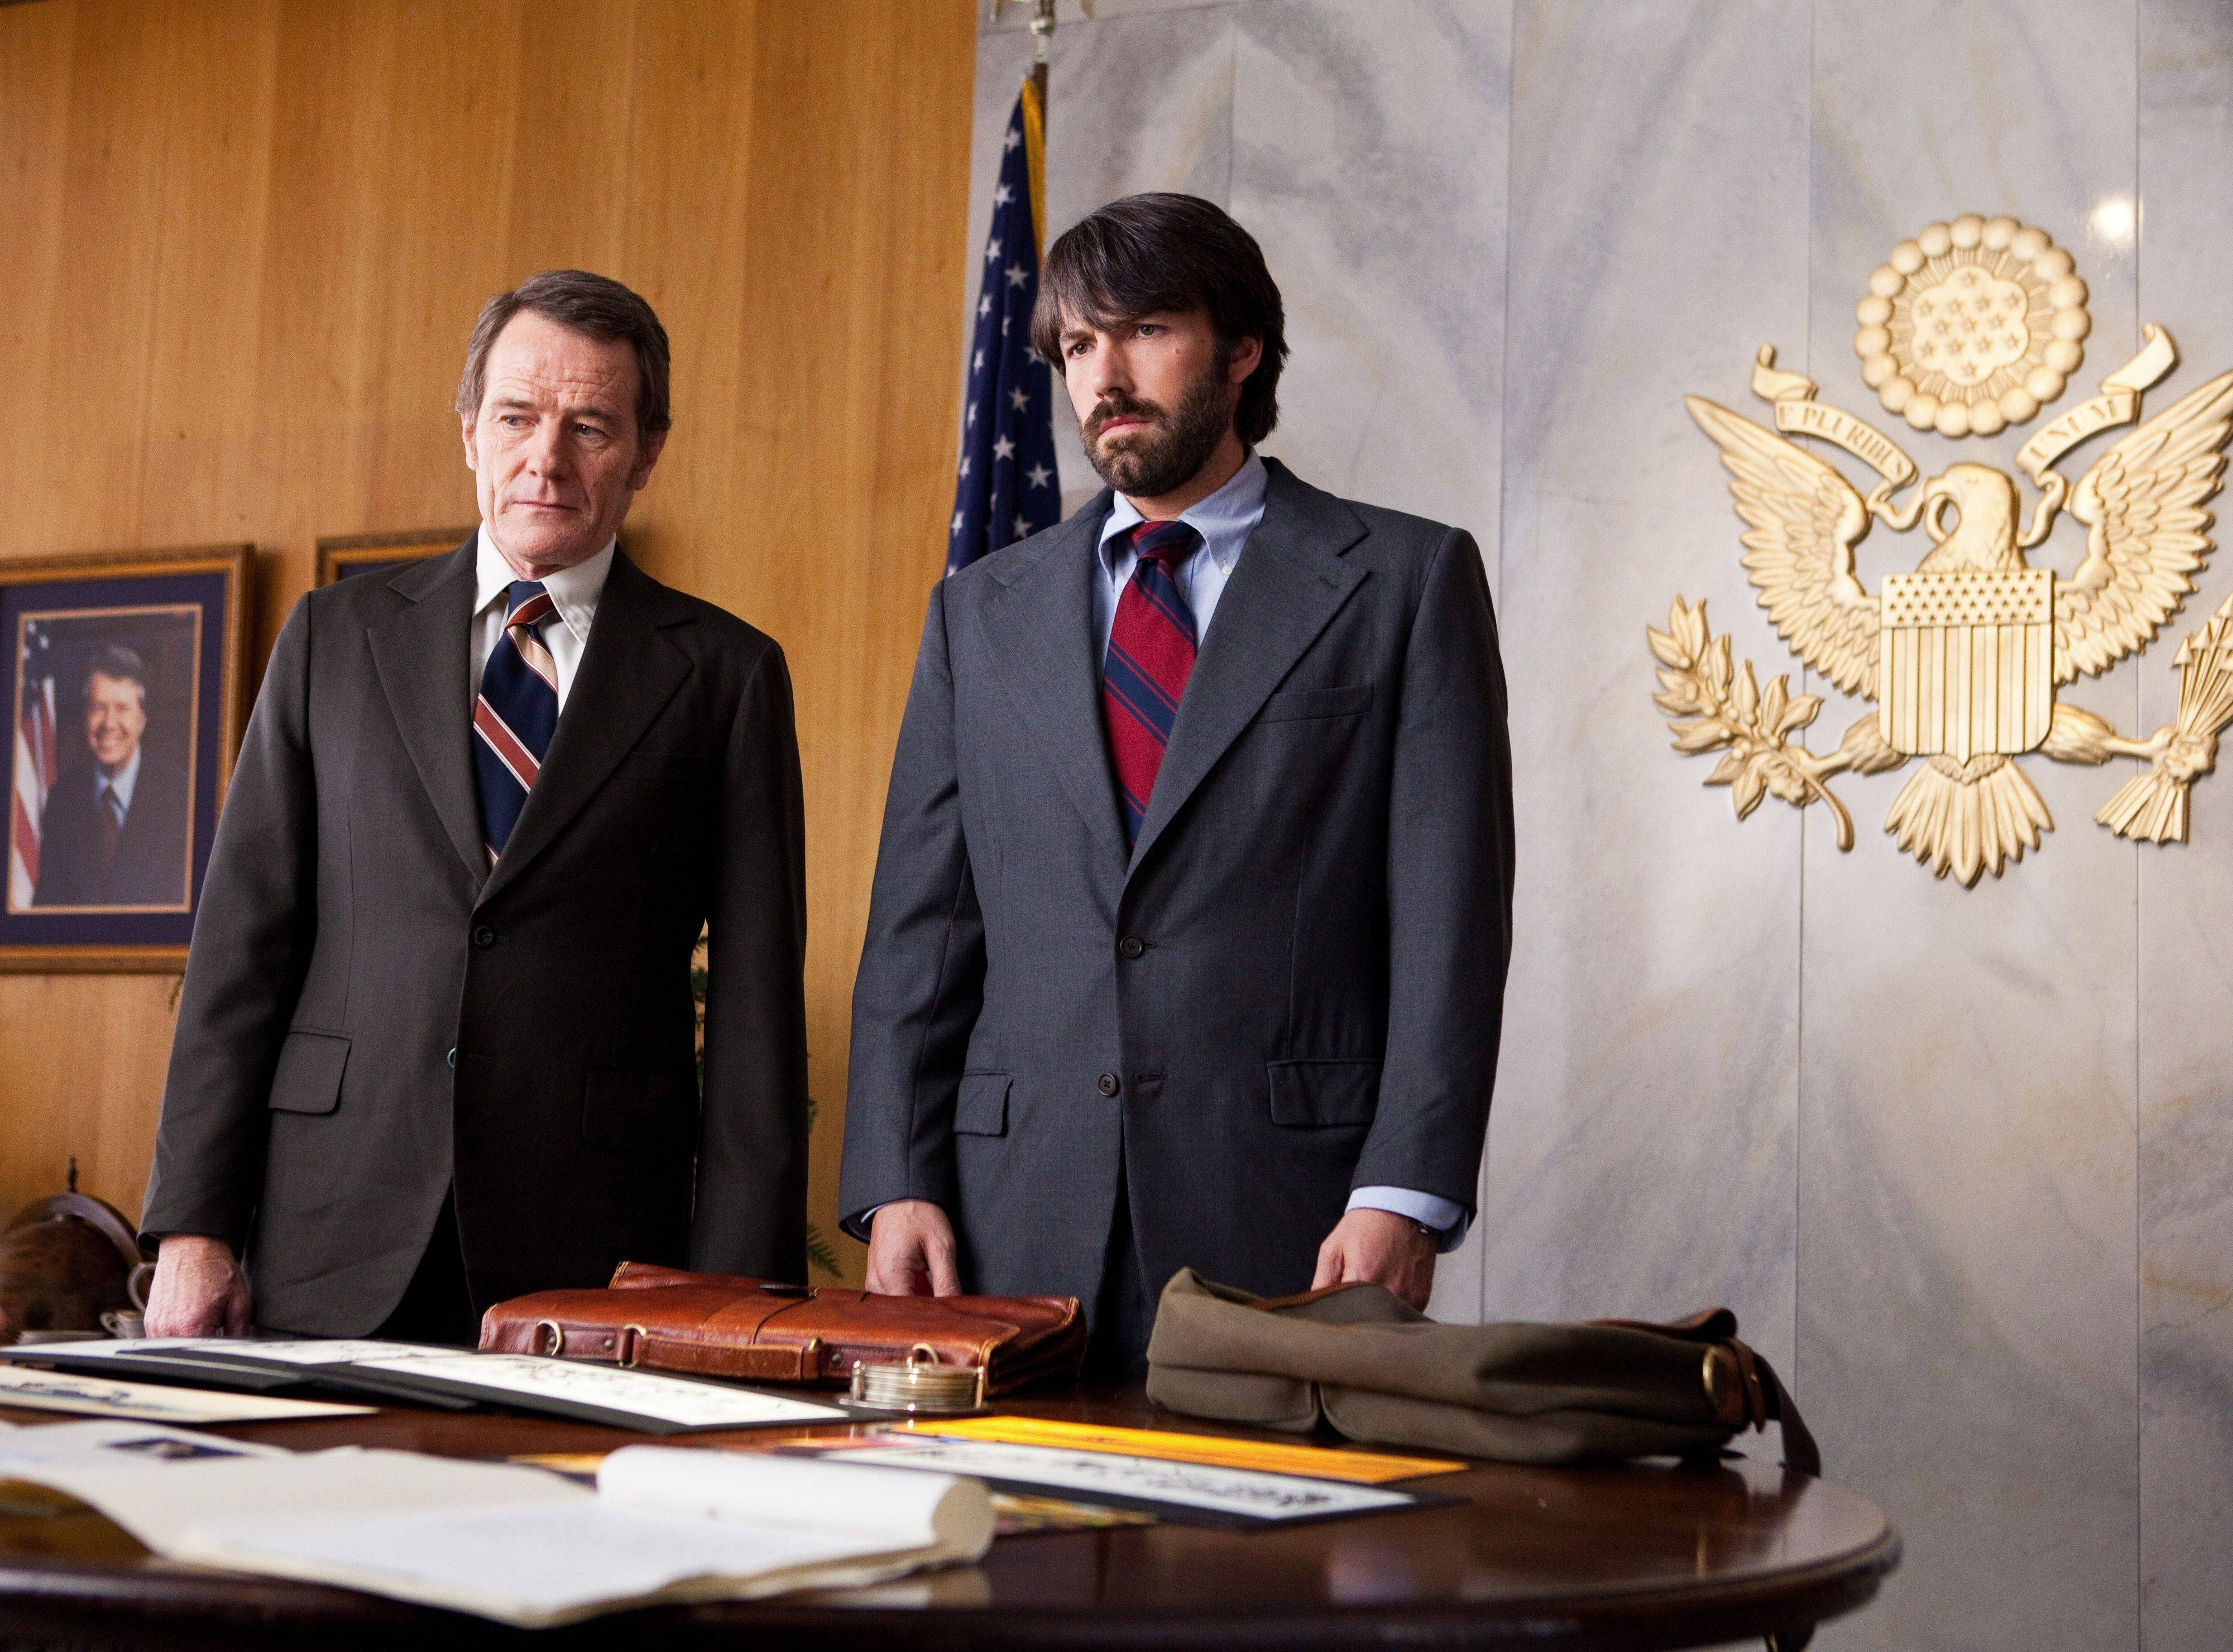 Bryan Cranston, left, plays Jack O�Donnell and Ben Affleck portrays Tony Mendez in �Argo,� a rescue thriller about the 1979 Iranian hostage crisis.